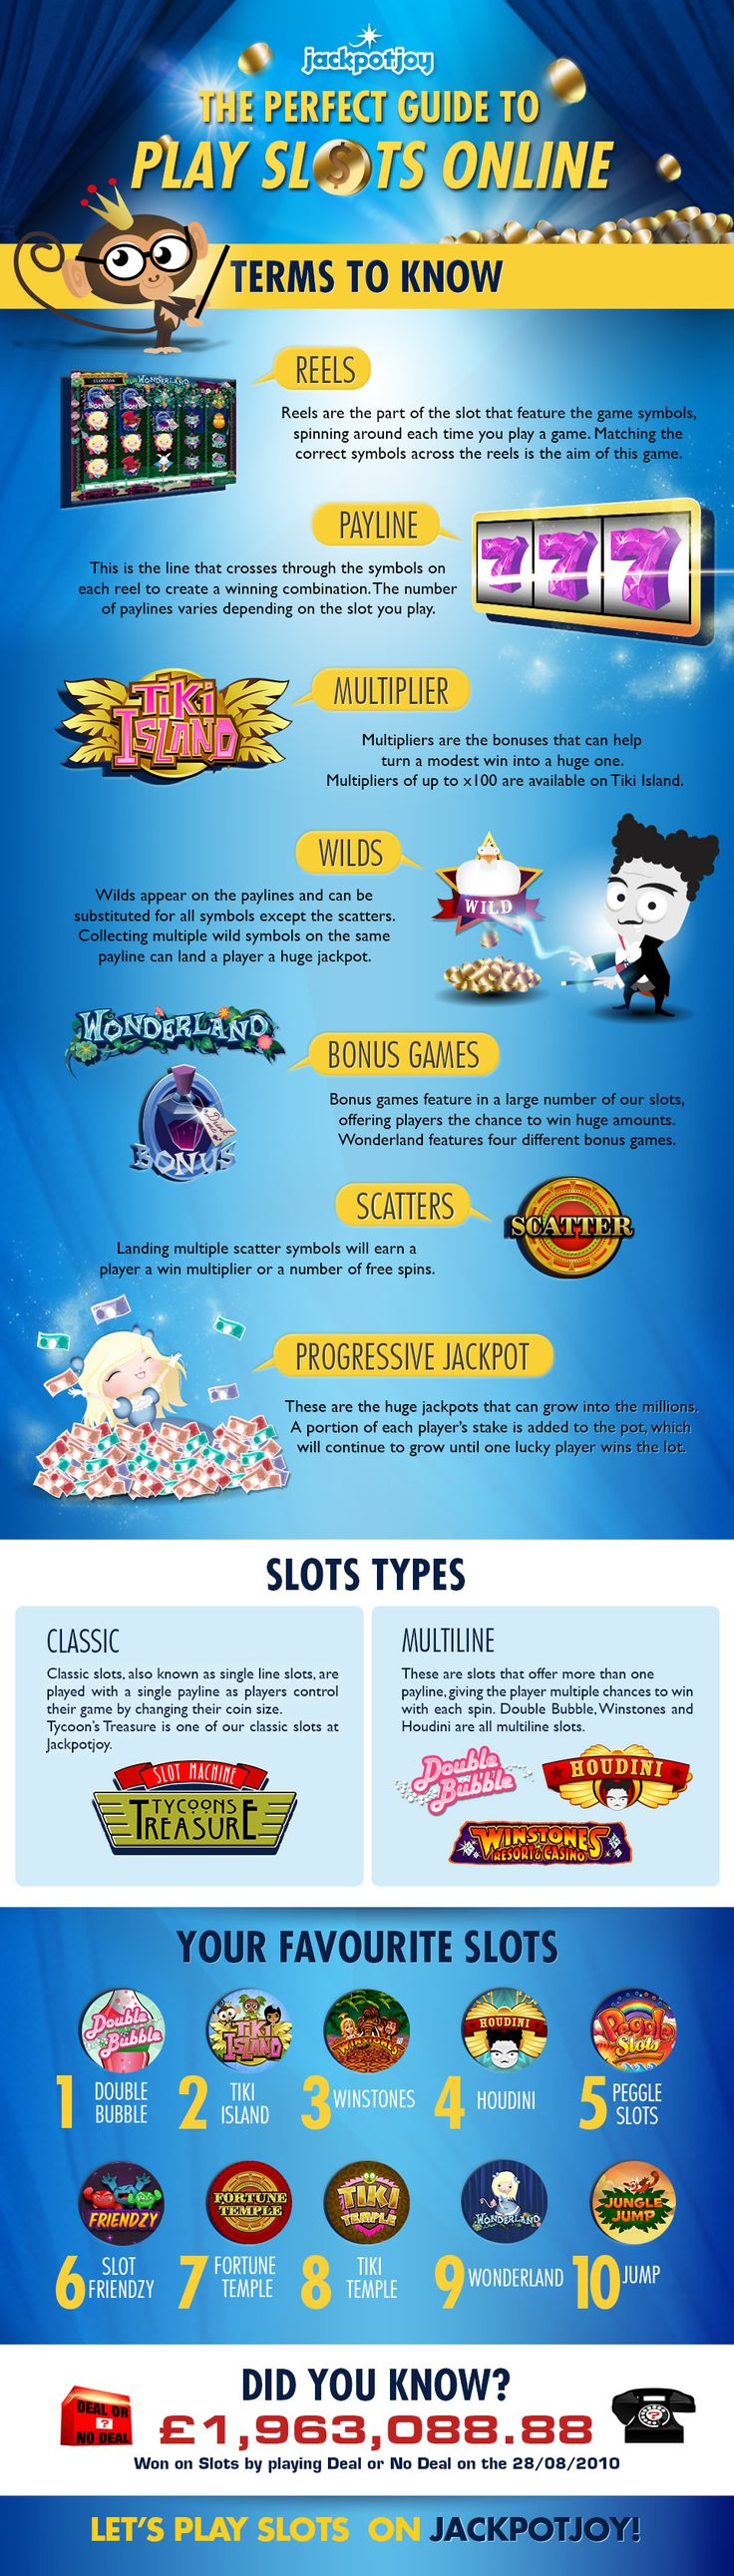 The Perfect Guide to Play Slots Online |